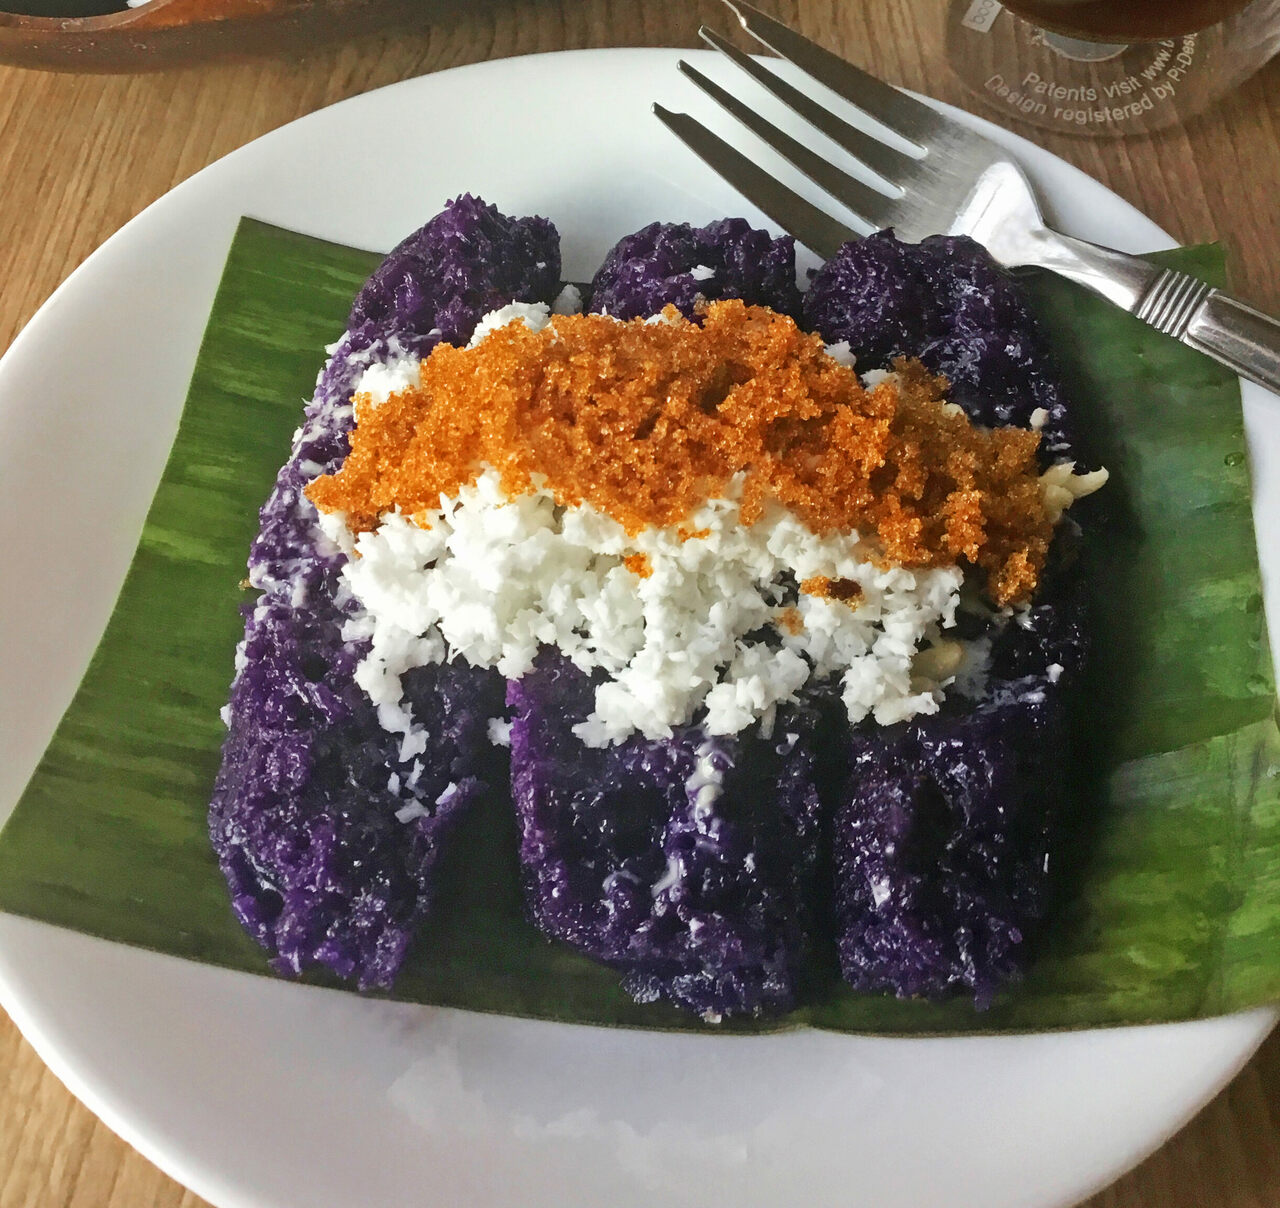 The purple hue traditionally comes from pirurutong rice, but cooks often use ube flavoring for color.